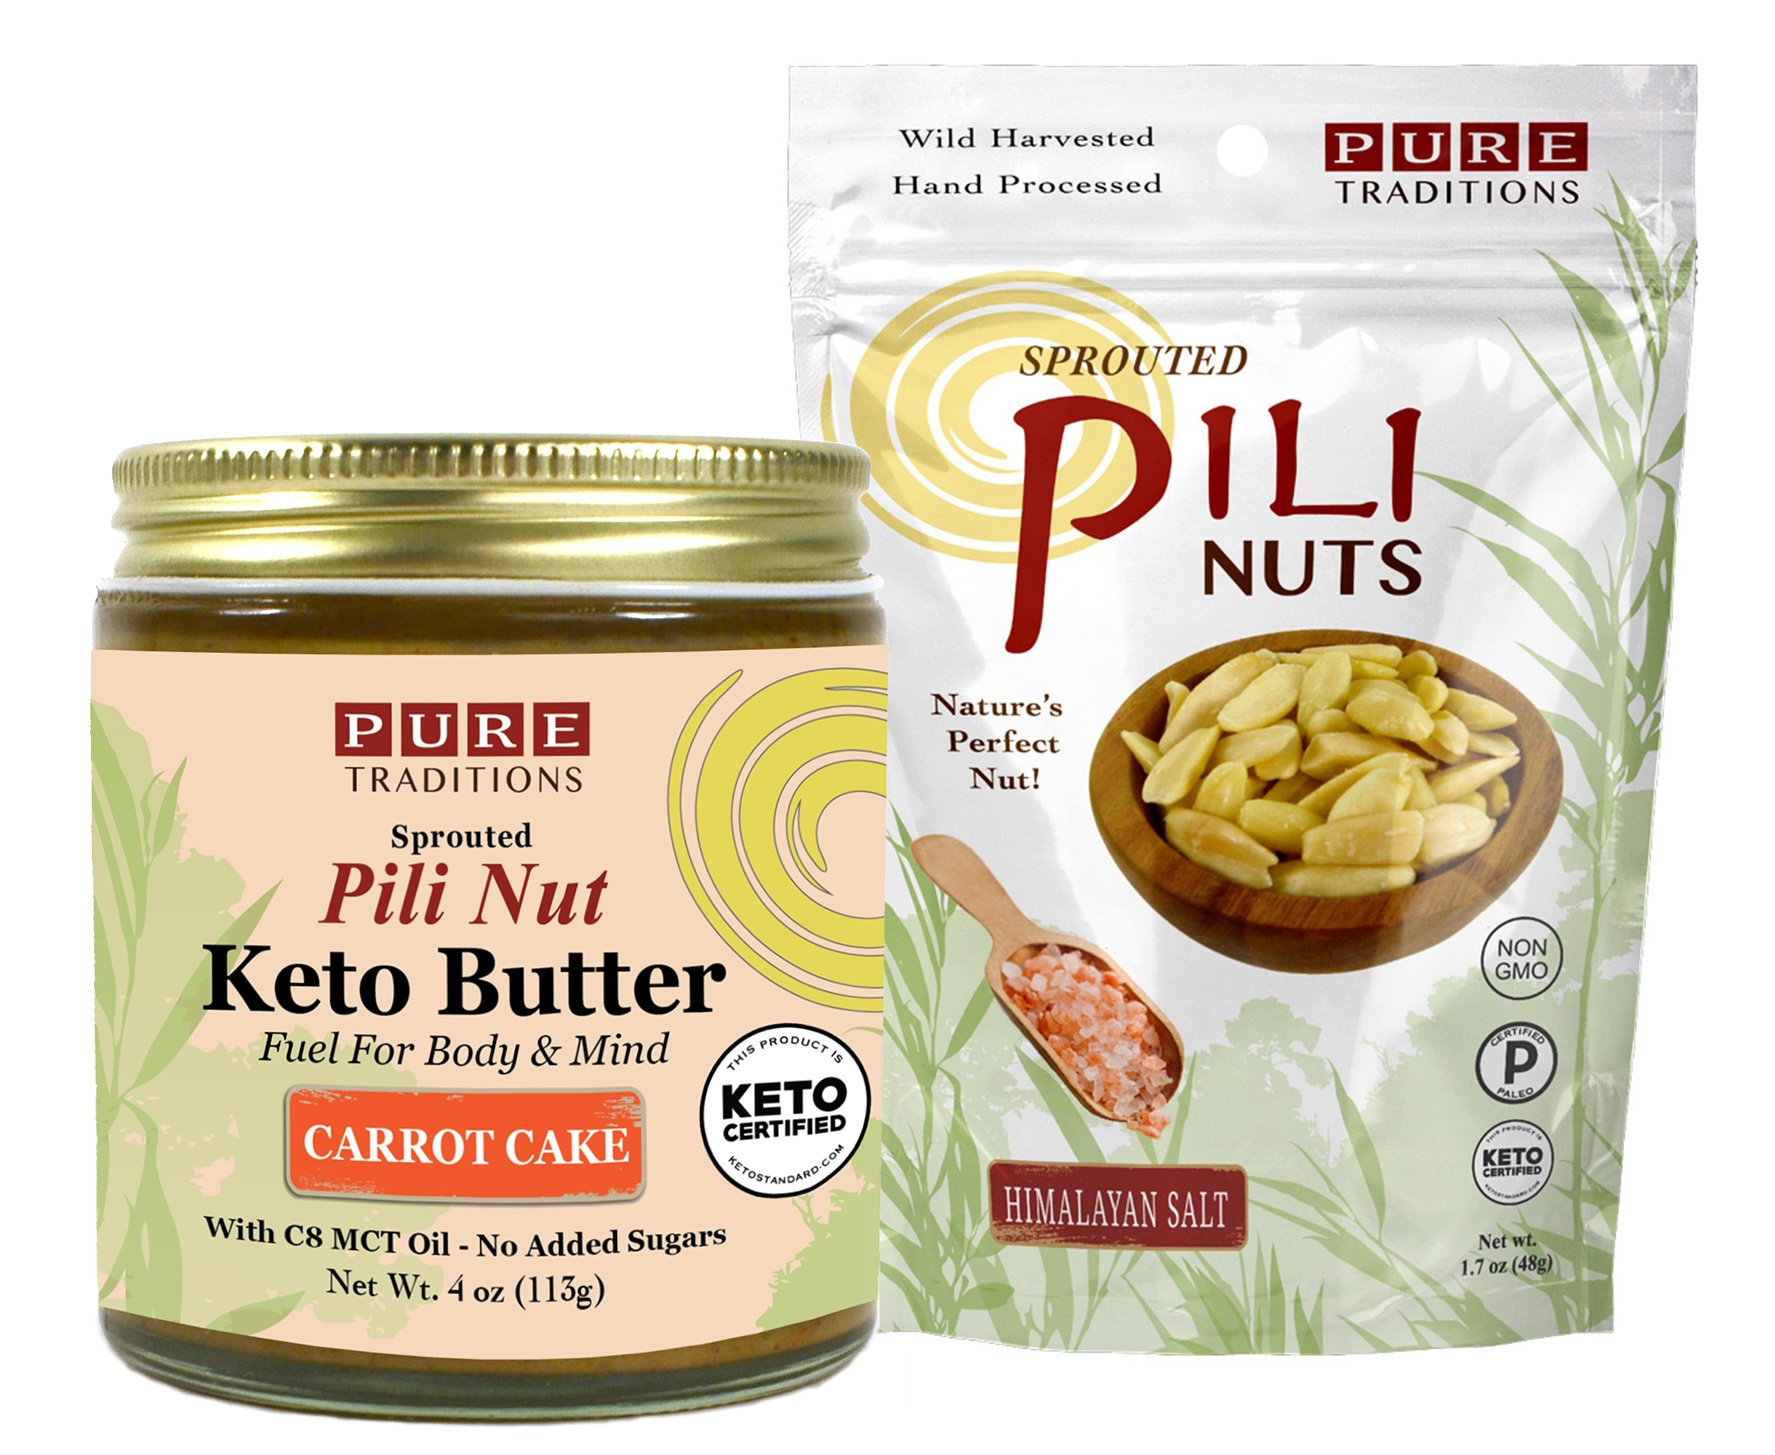 Pili Nut Keto Butter, Carrot Cake (4 oz) plus Sprouted Pili Nuts, Himalayan Salt (1.7 oz)